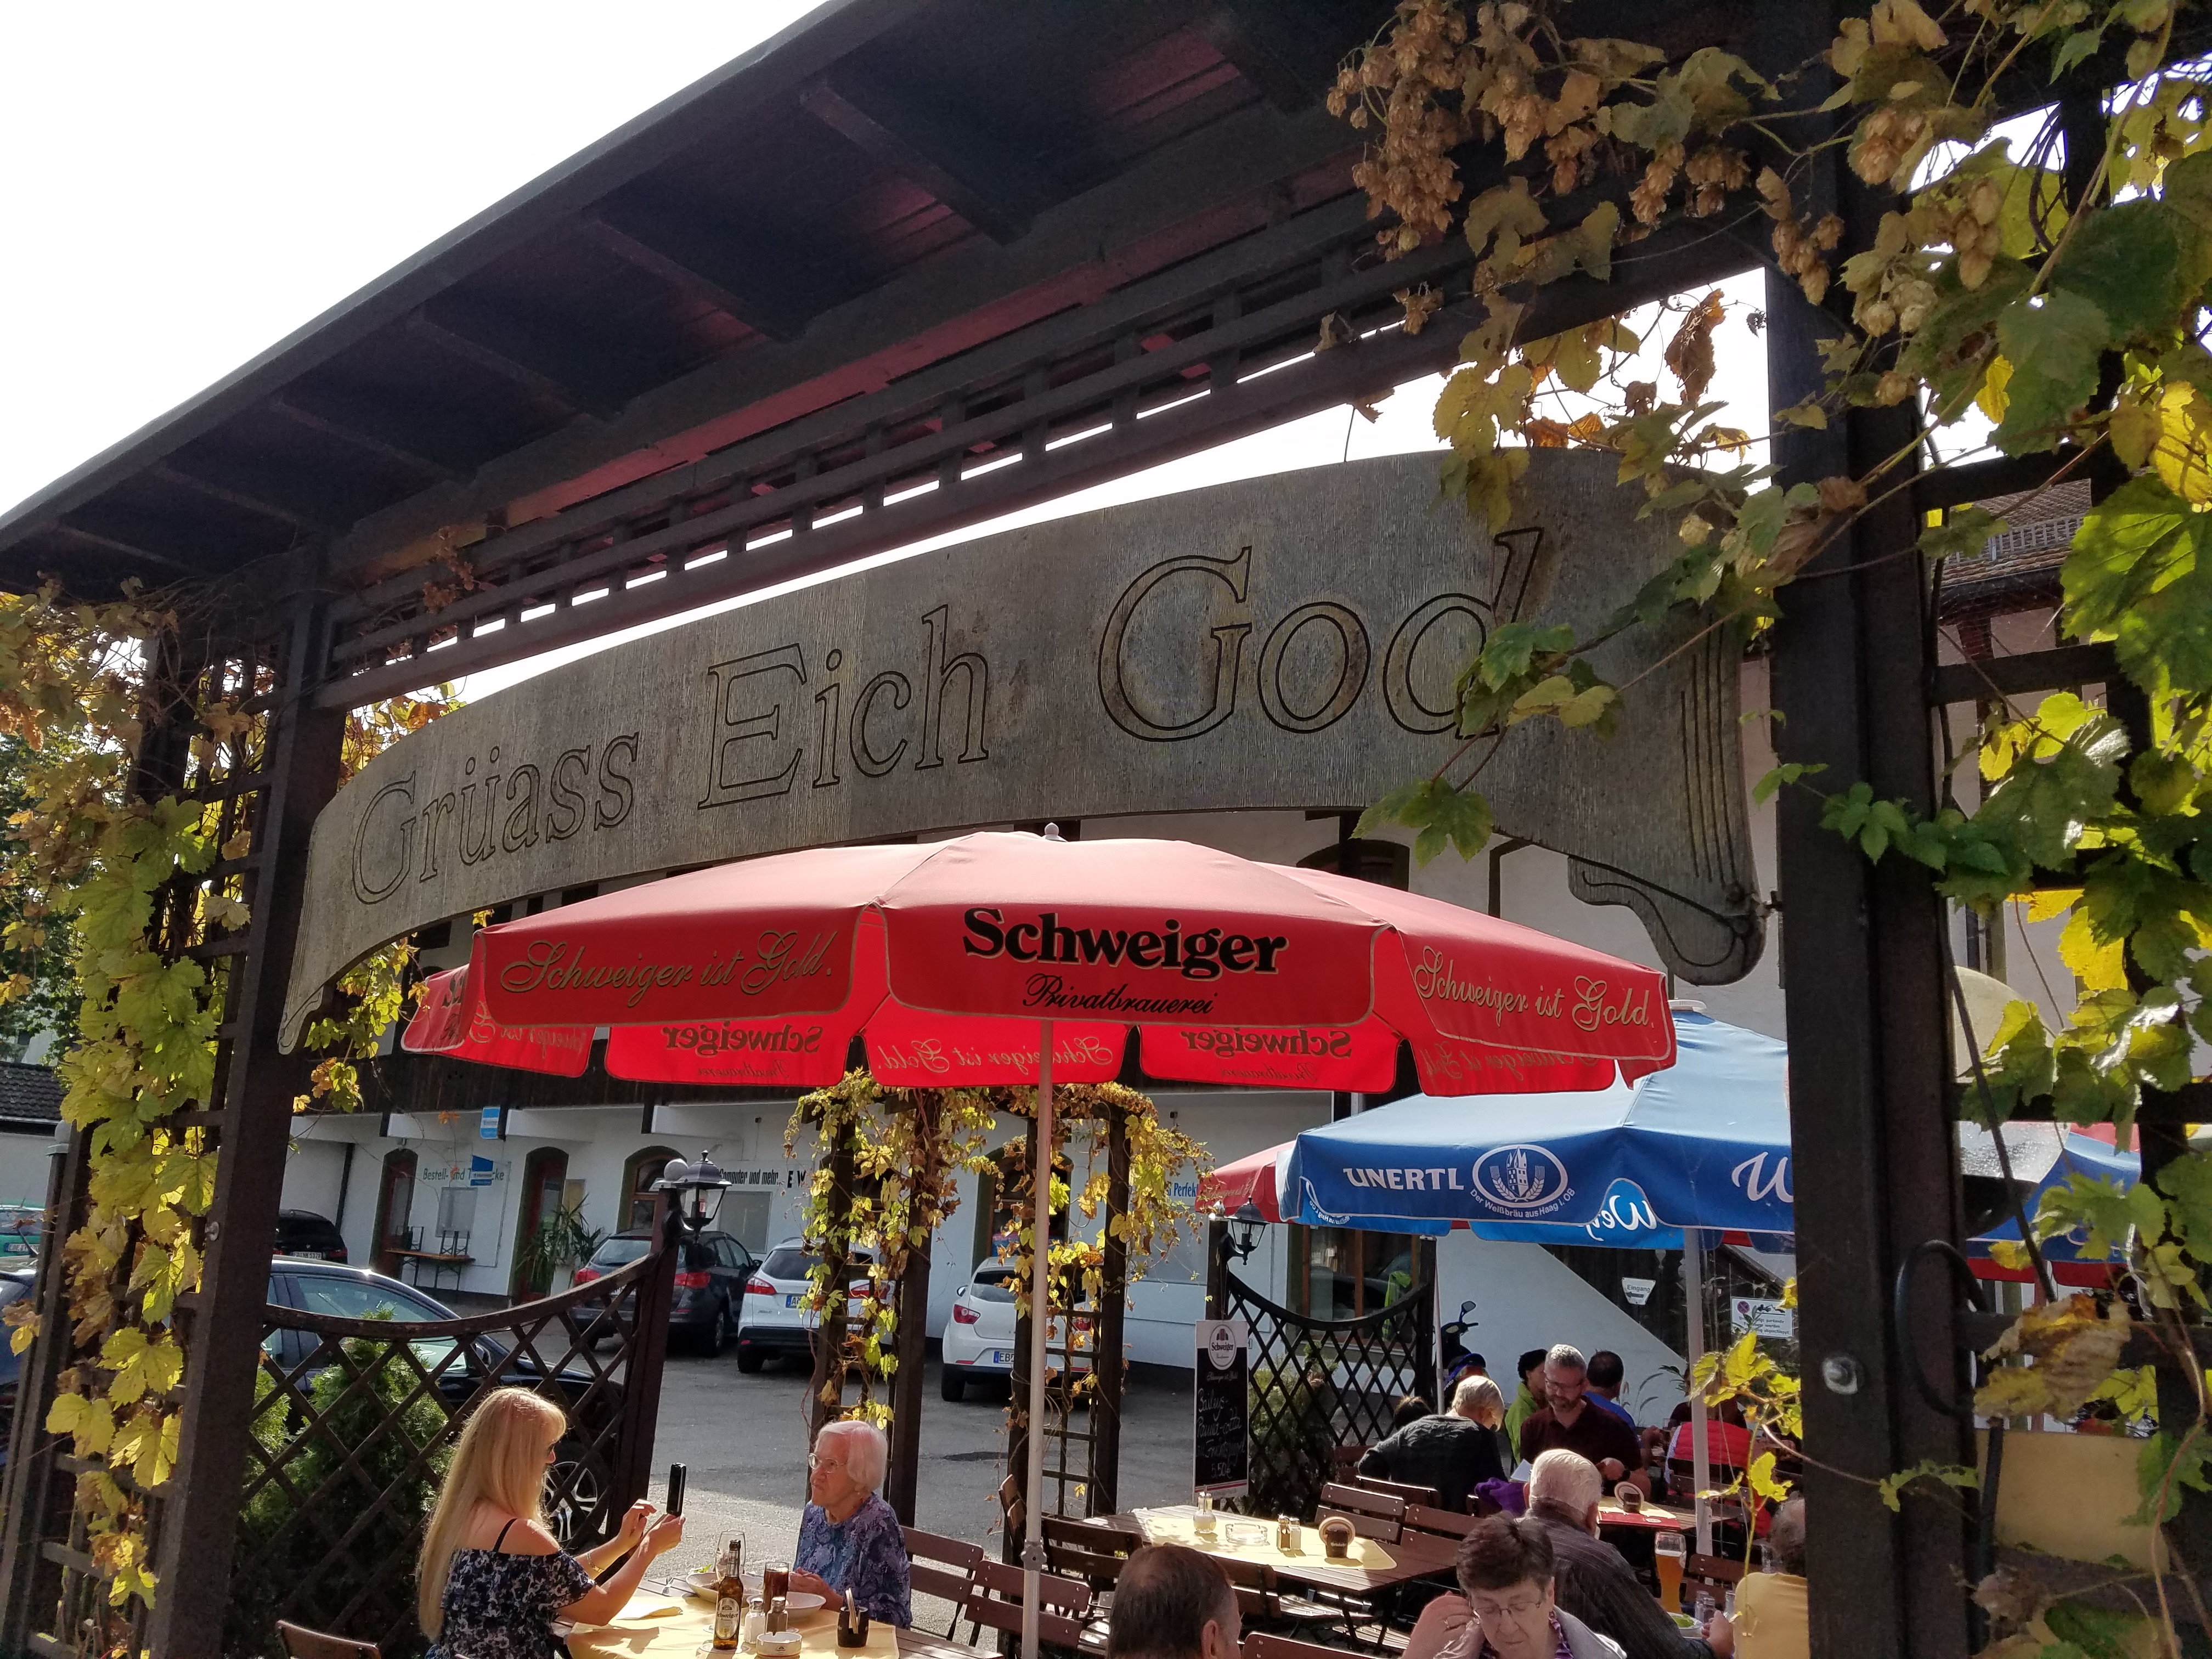 "Beer Garden in Austria with ""Grüass Eich God"" sign - Gamesforlanguage.com"